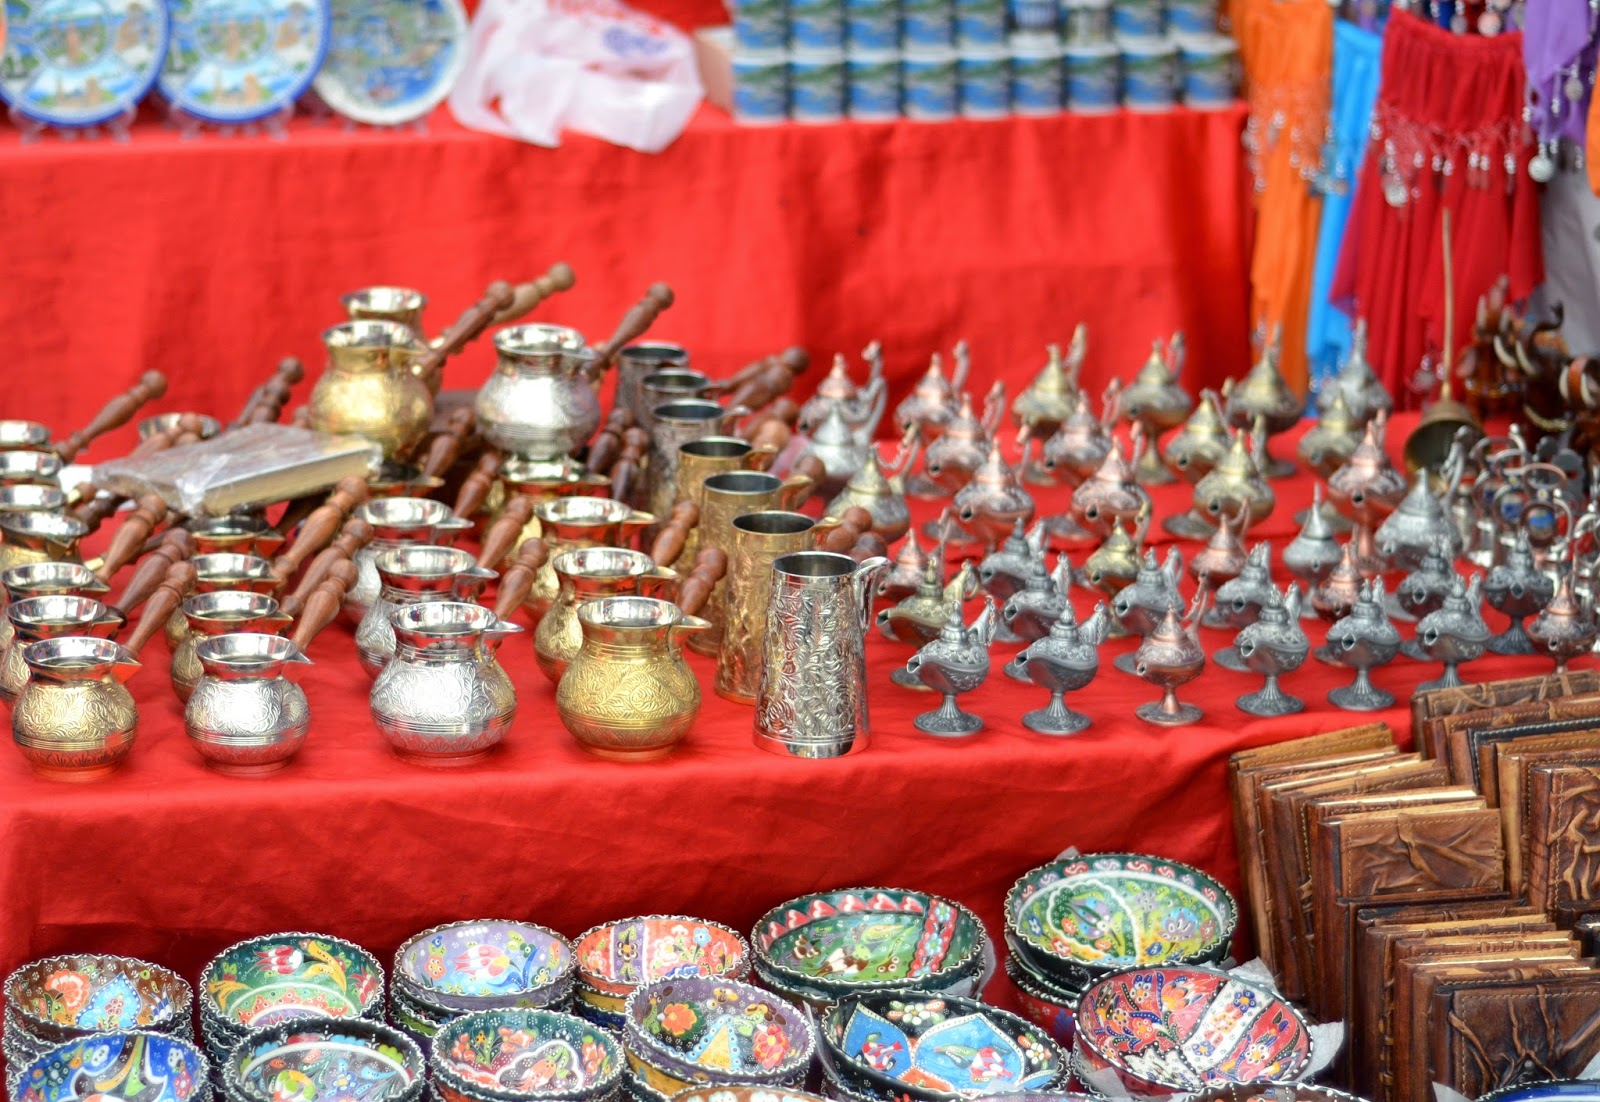 bright-colourful-bowl-lamps-turkey-market